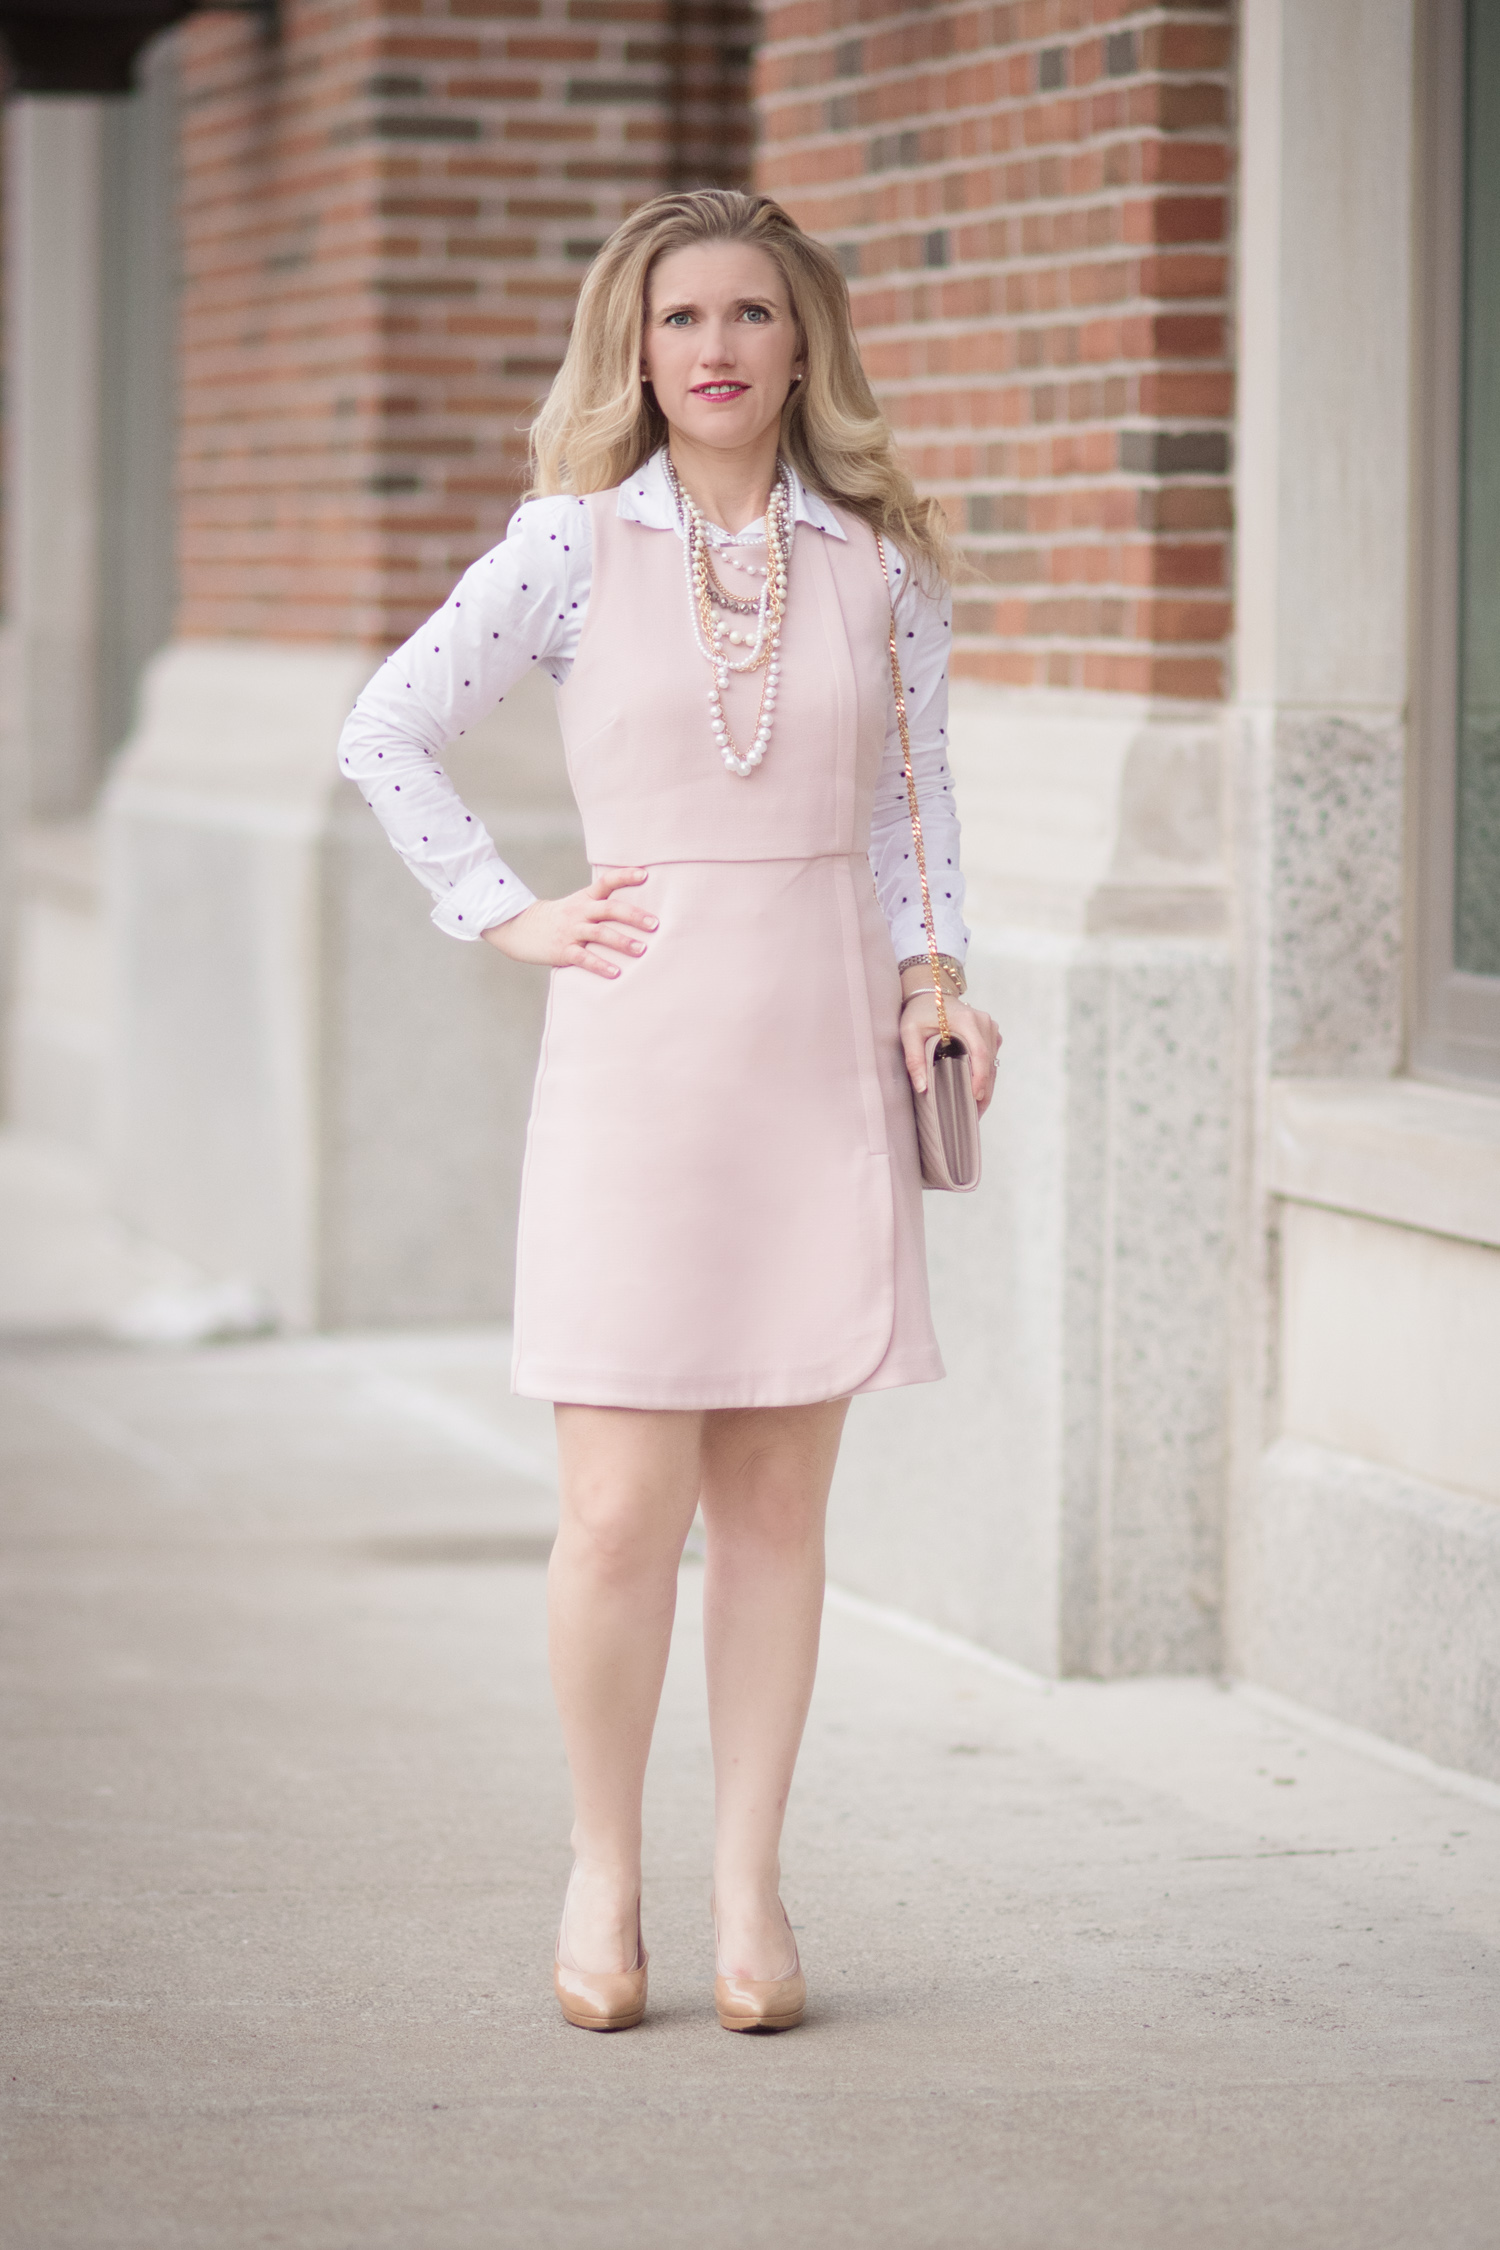 Petite Fashion And Style Blog Fashion For Petite Women Pink